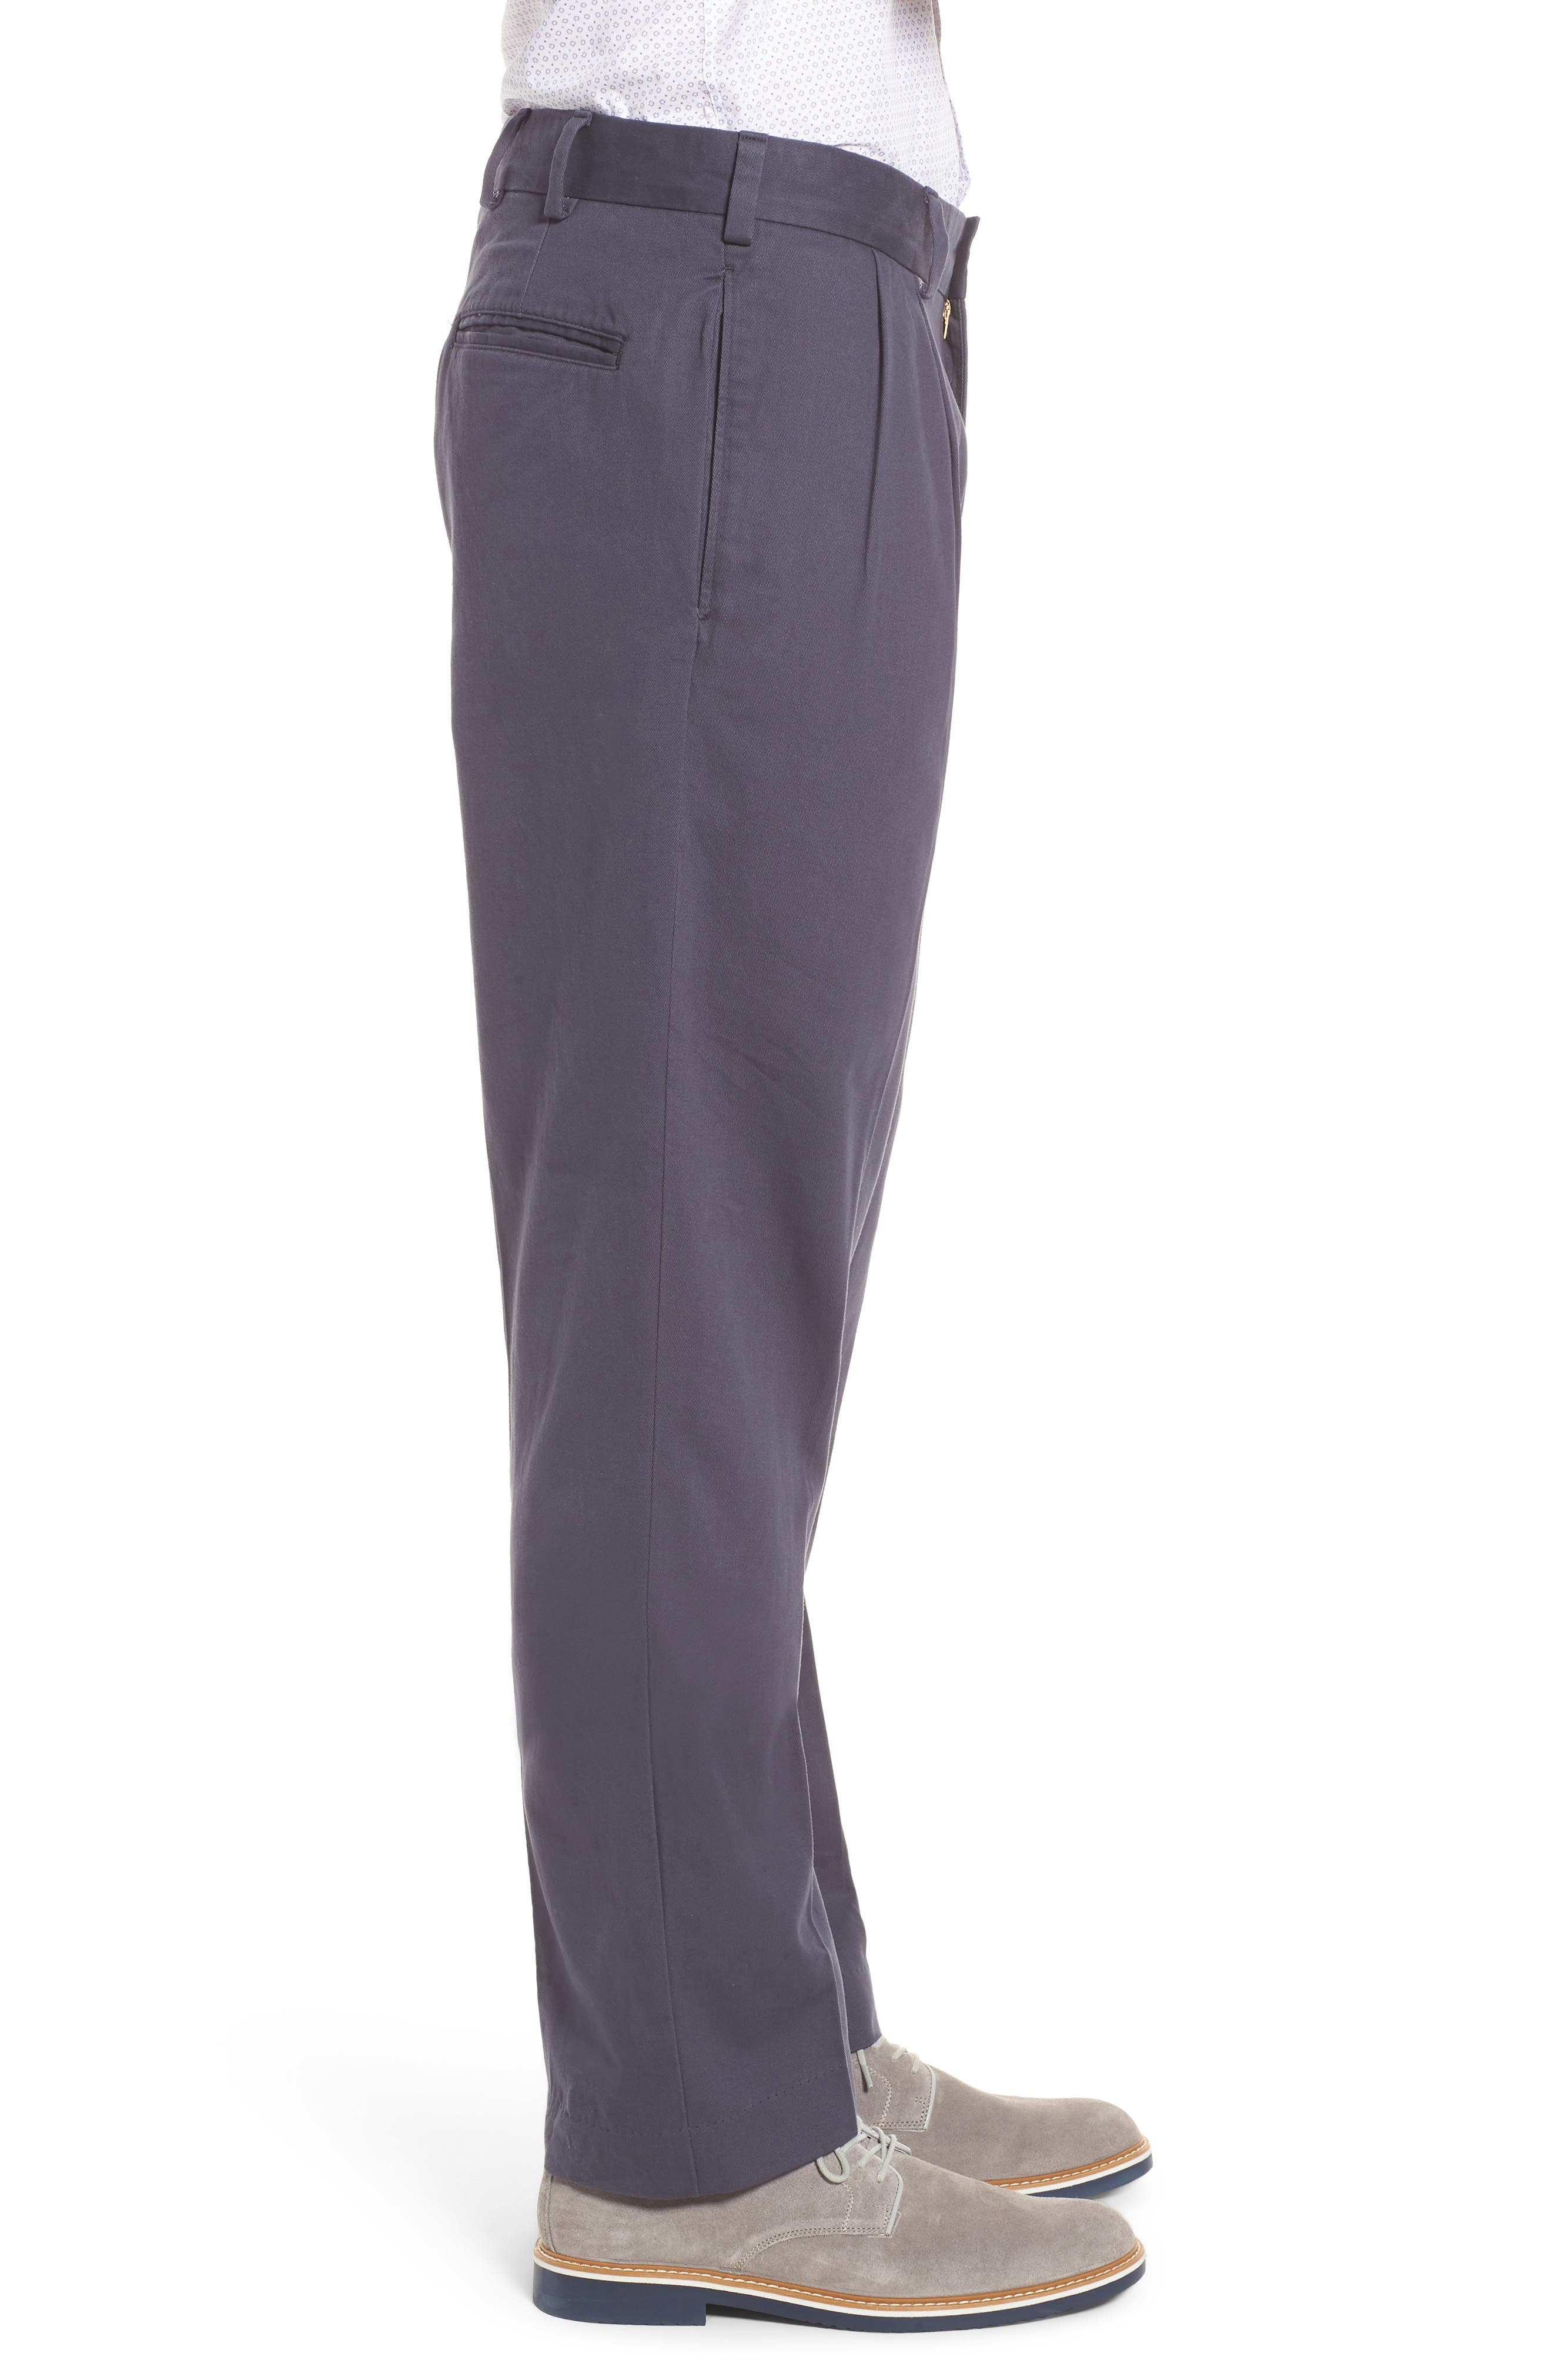 M2 Classic Fit Vintage Twill Pleated Pants,                             Alternate thumbnail 3, color,                             Navy